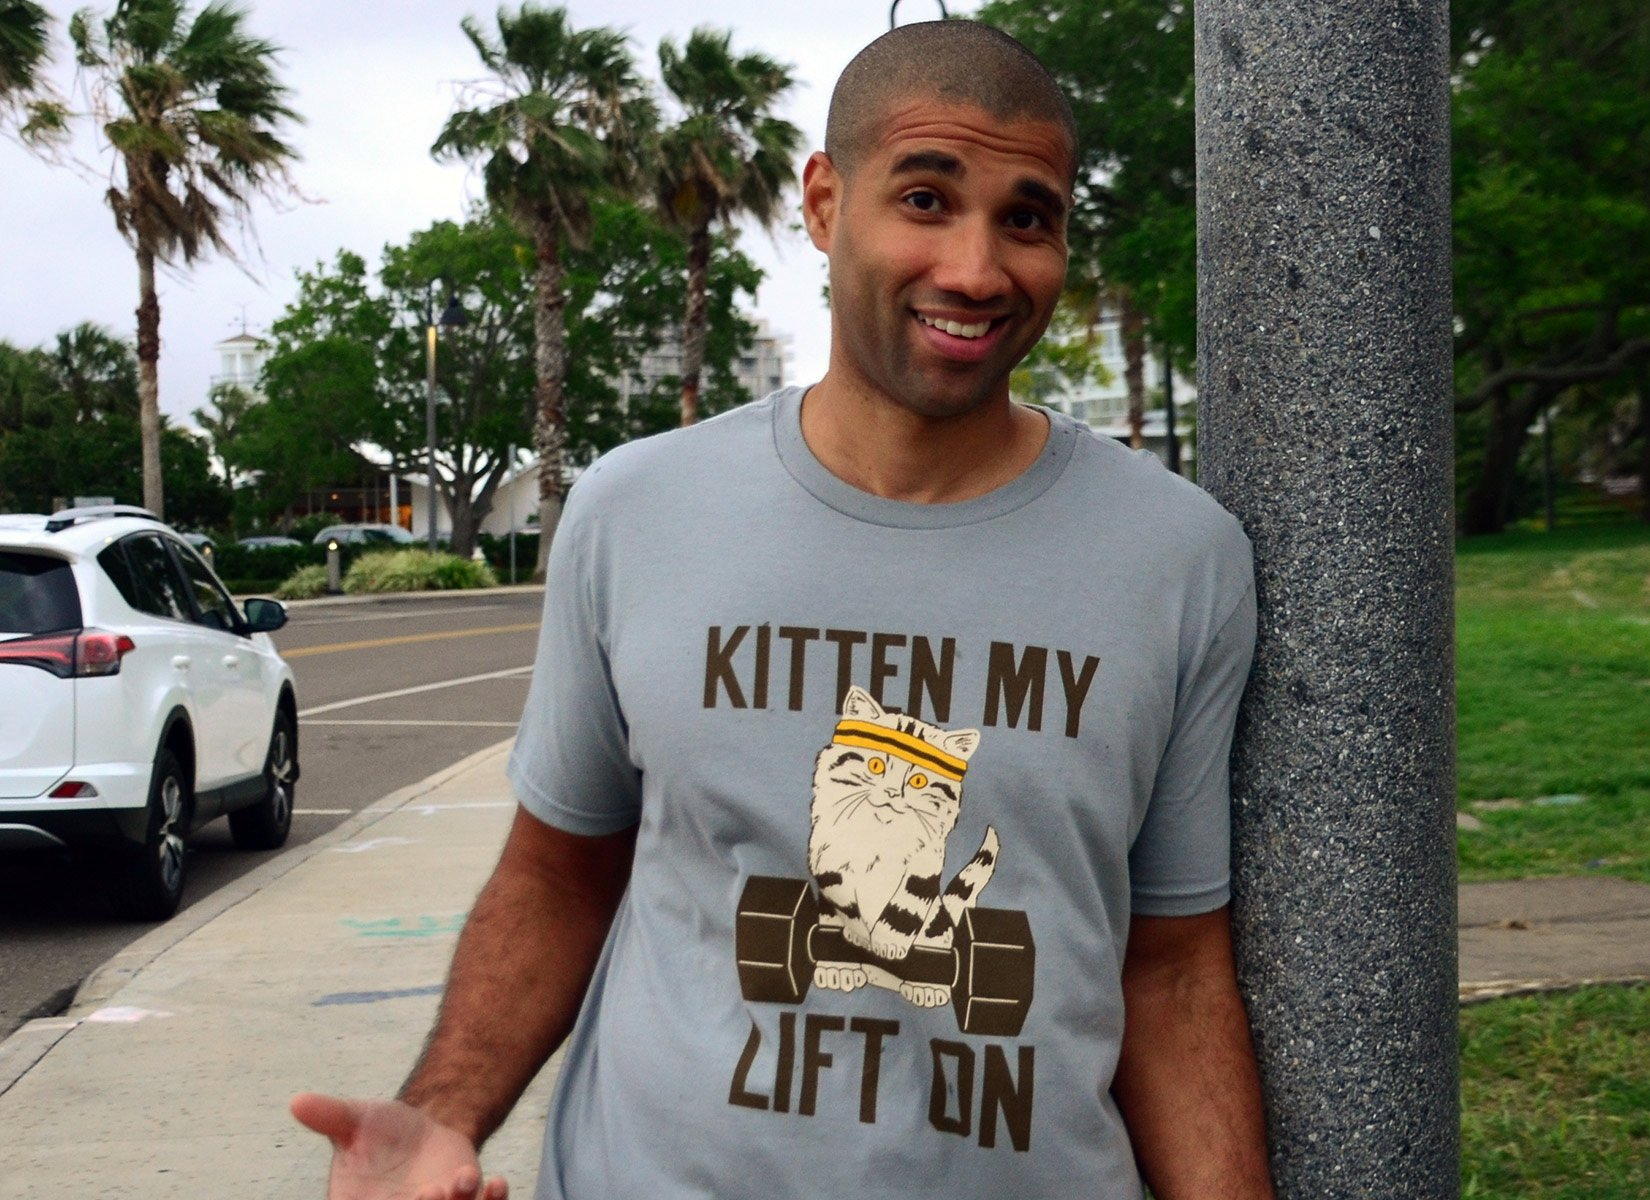 Kitten My Lift On on Mens T-Shirt